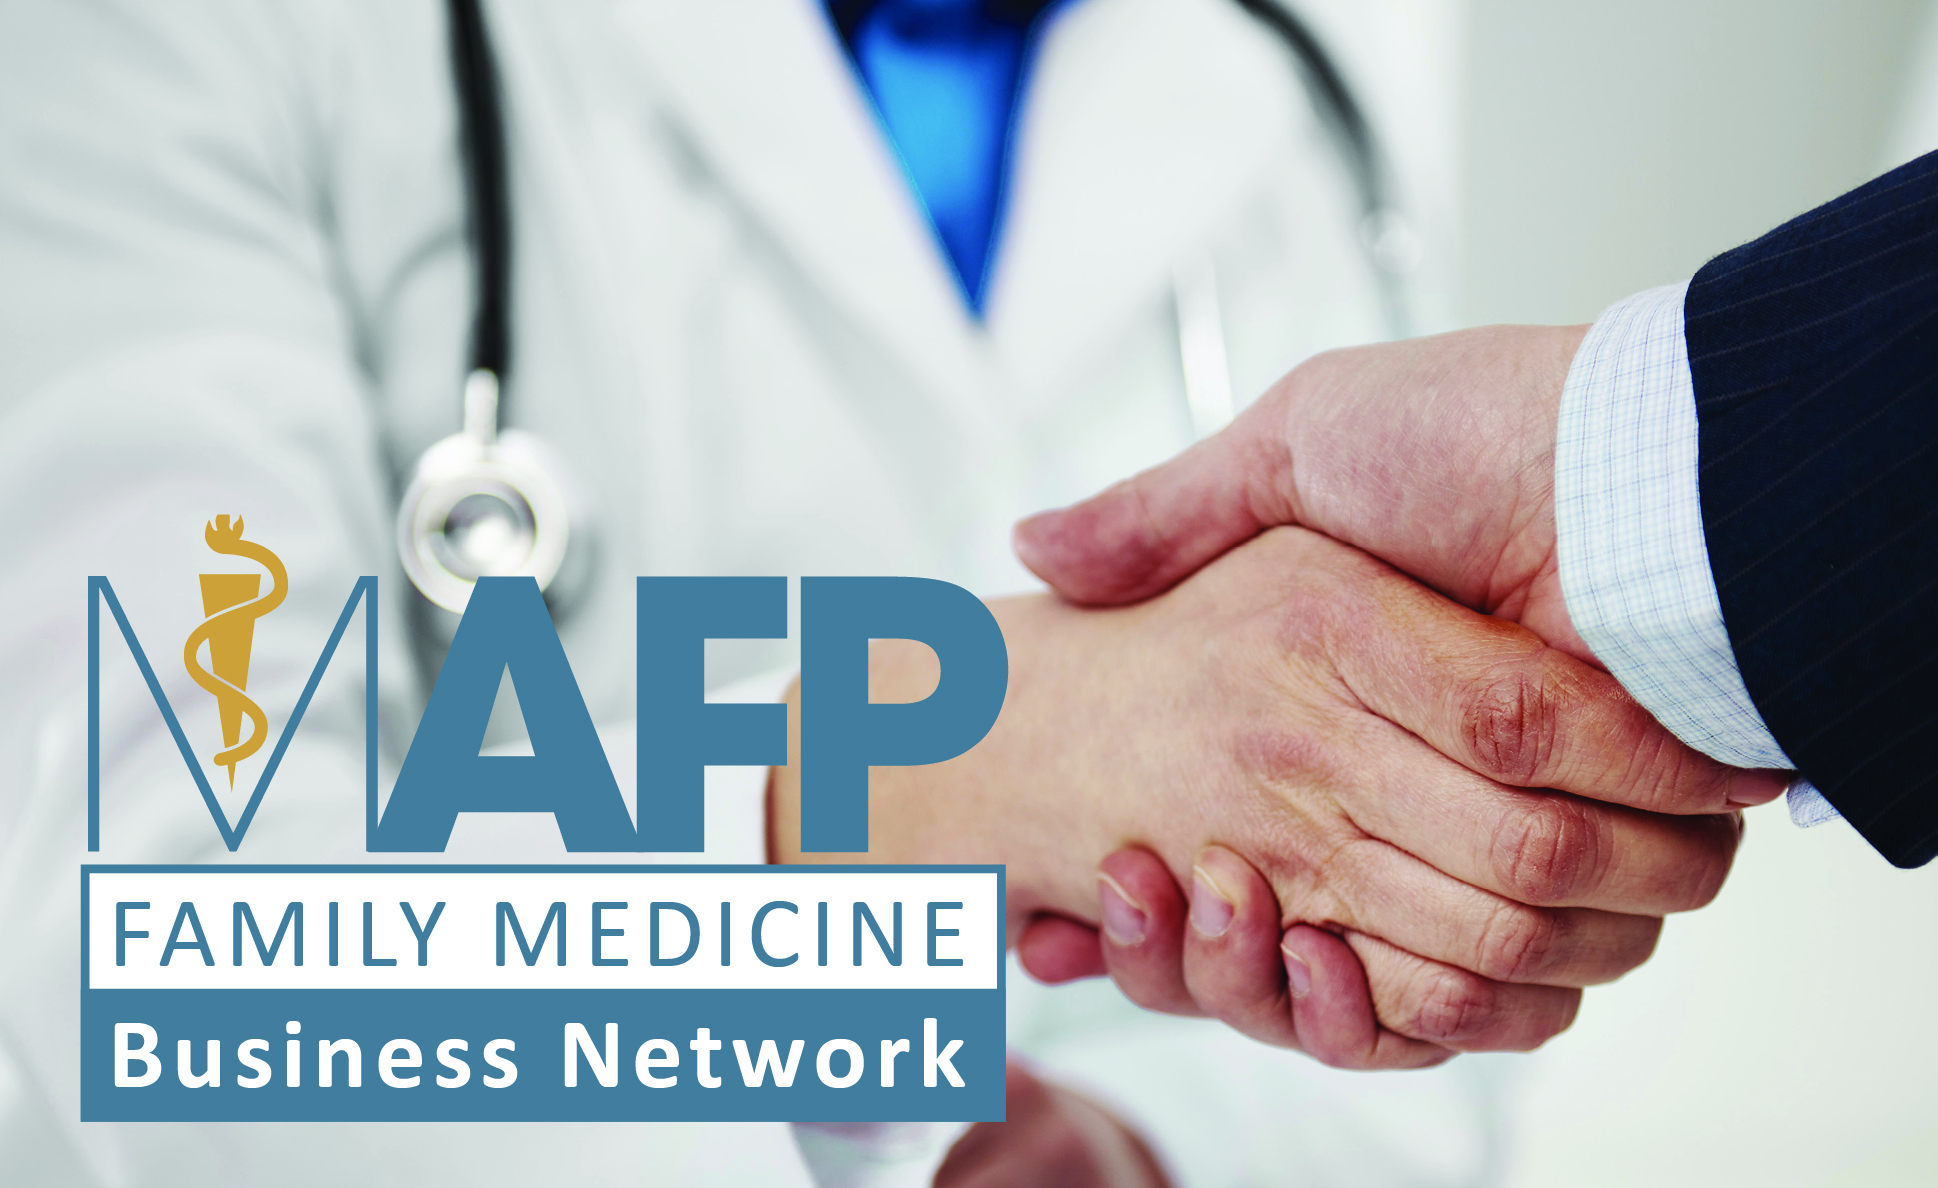 Family Medicine Business Network